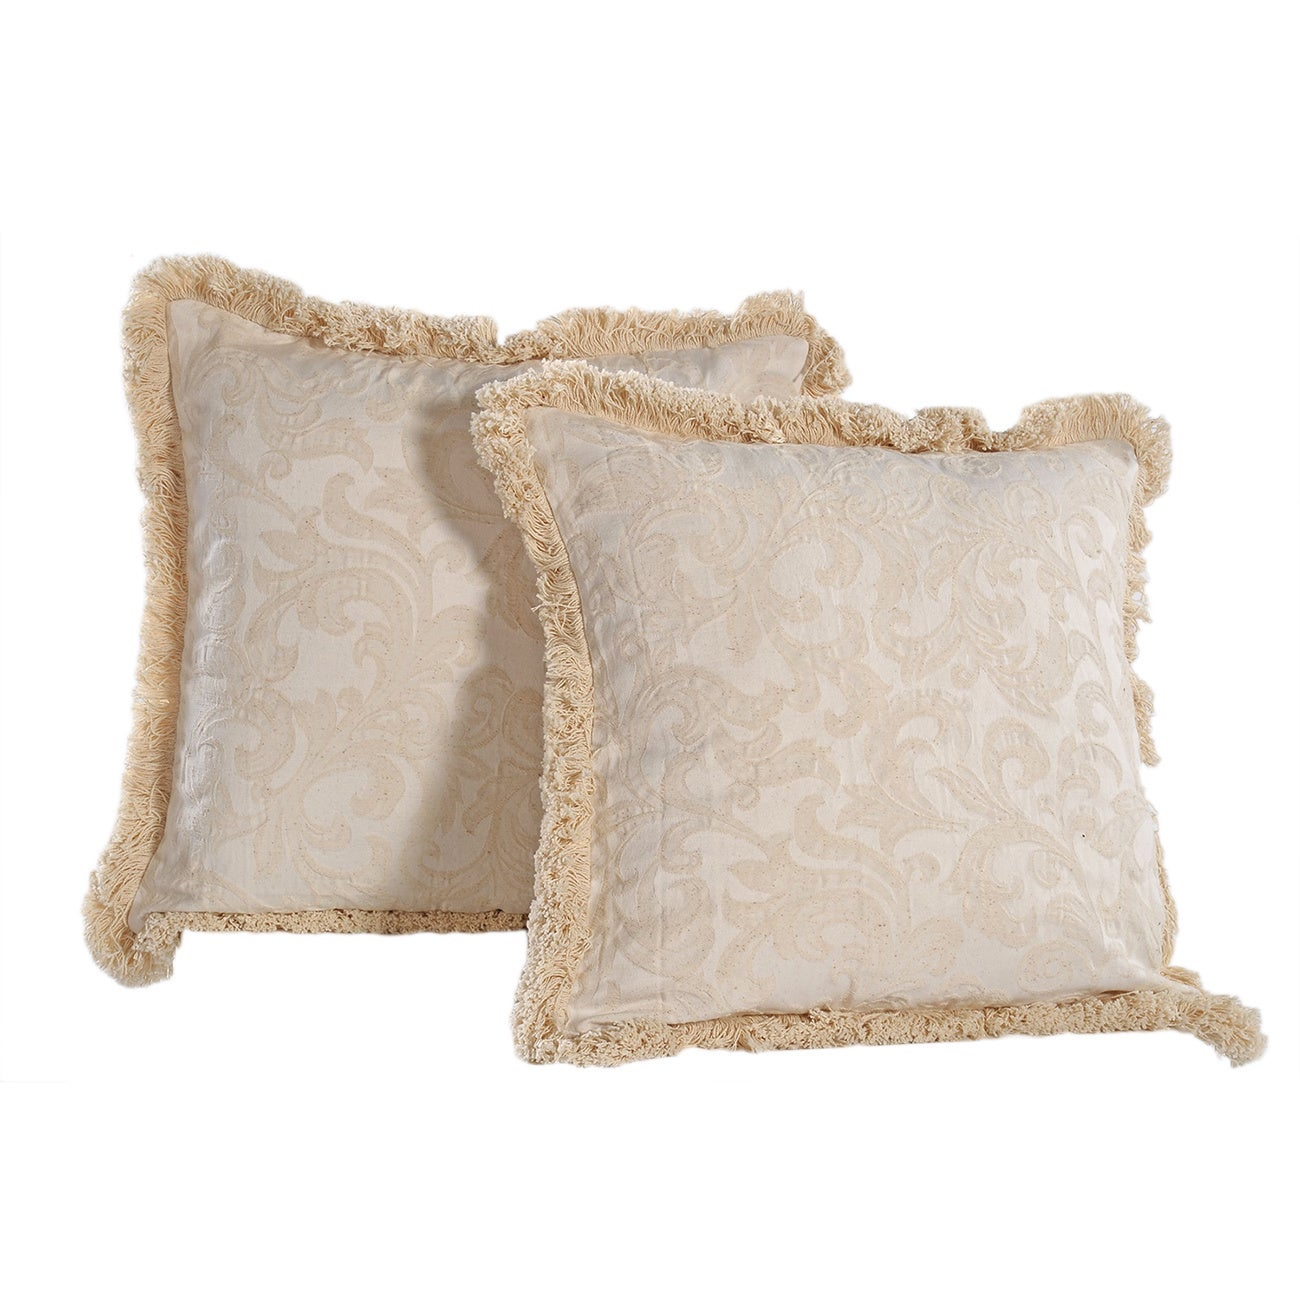 Decorative Throw Pillows With Fringe : Washed Damask Pattern Fringed Square Soft Removable Cover Off-White Decorative Pillows (set of 2 ...